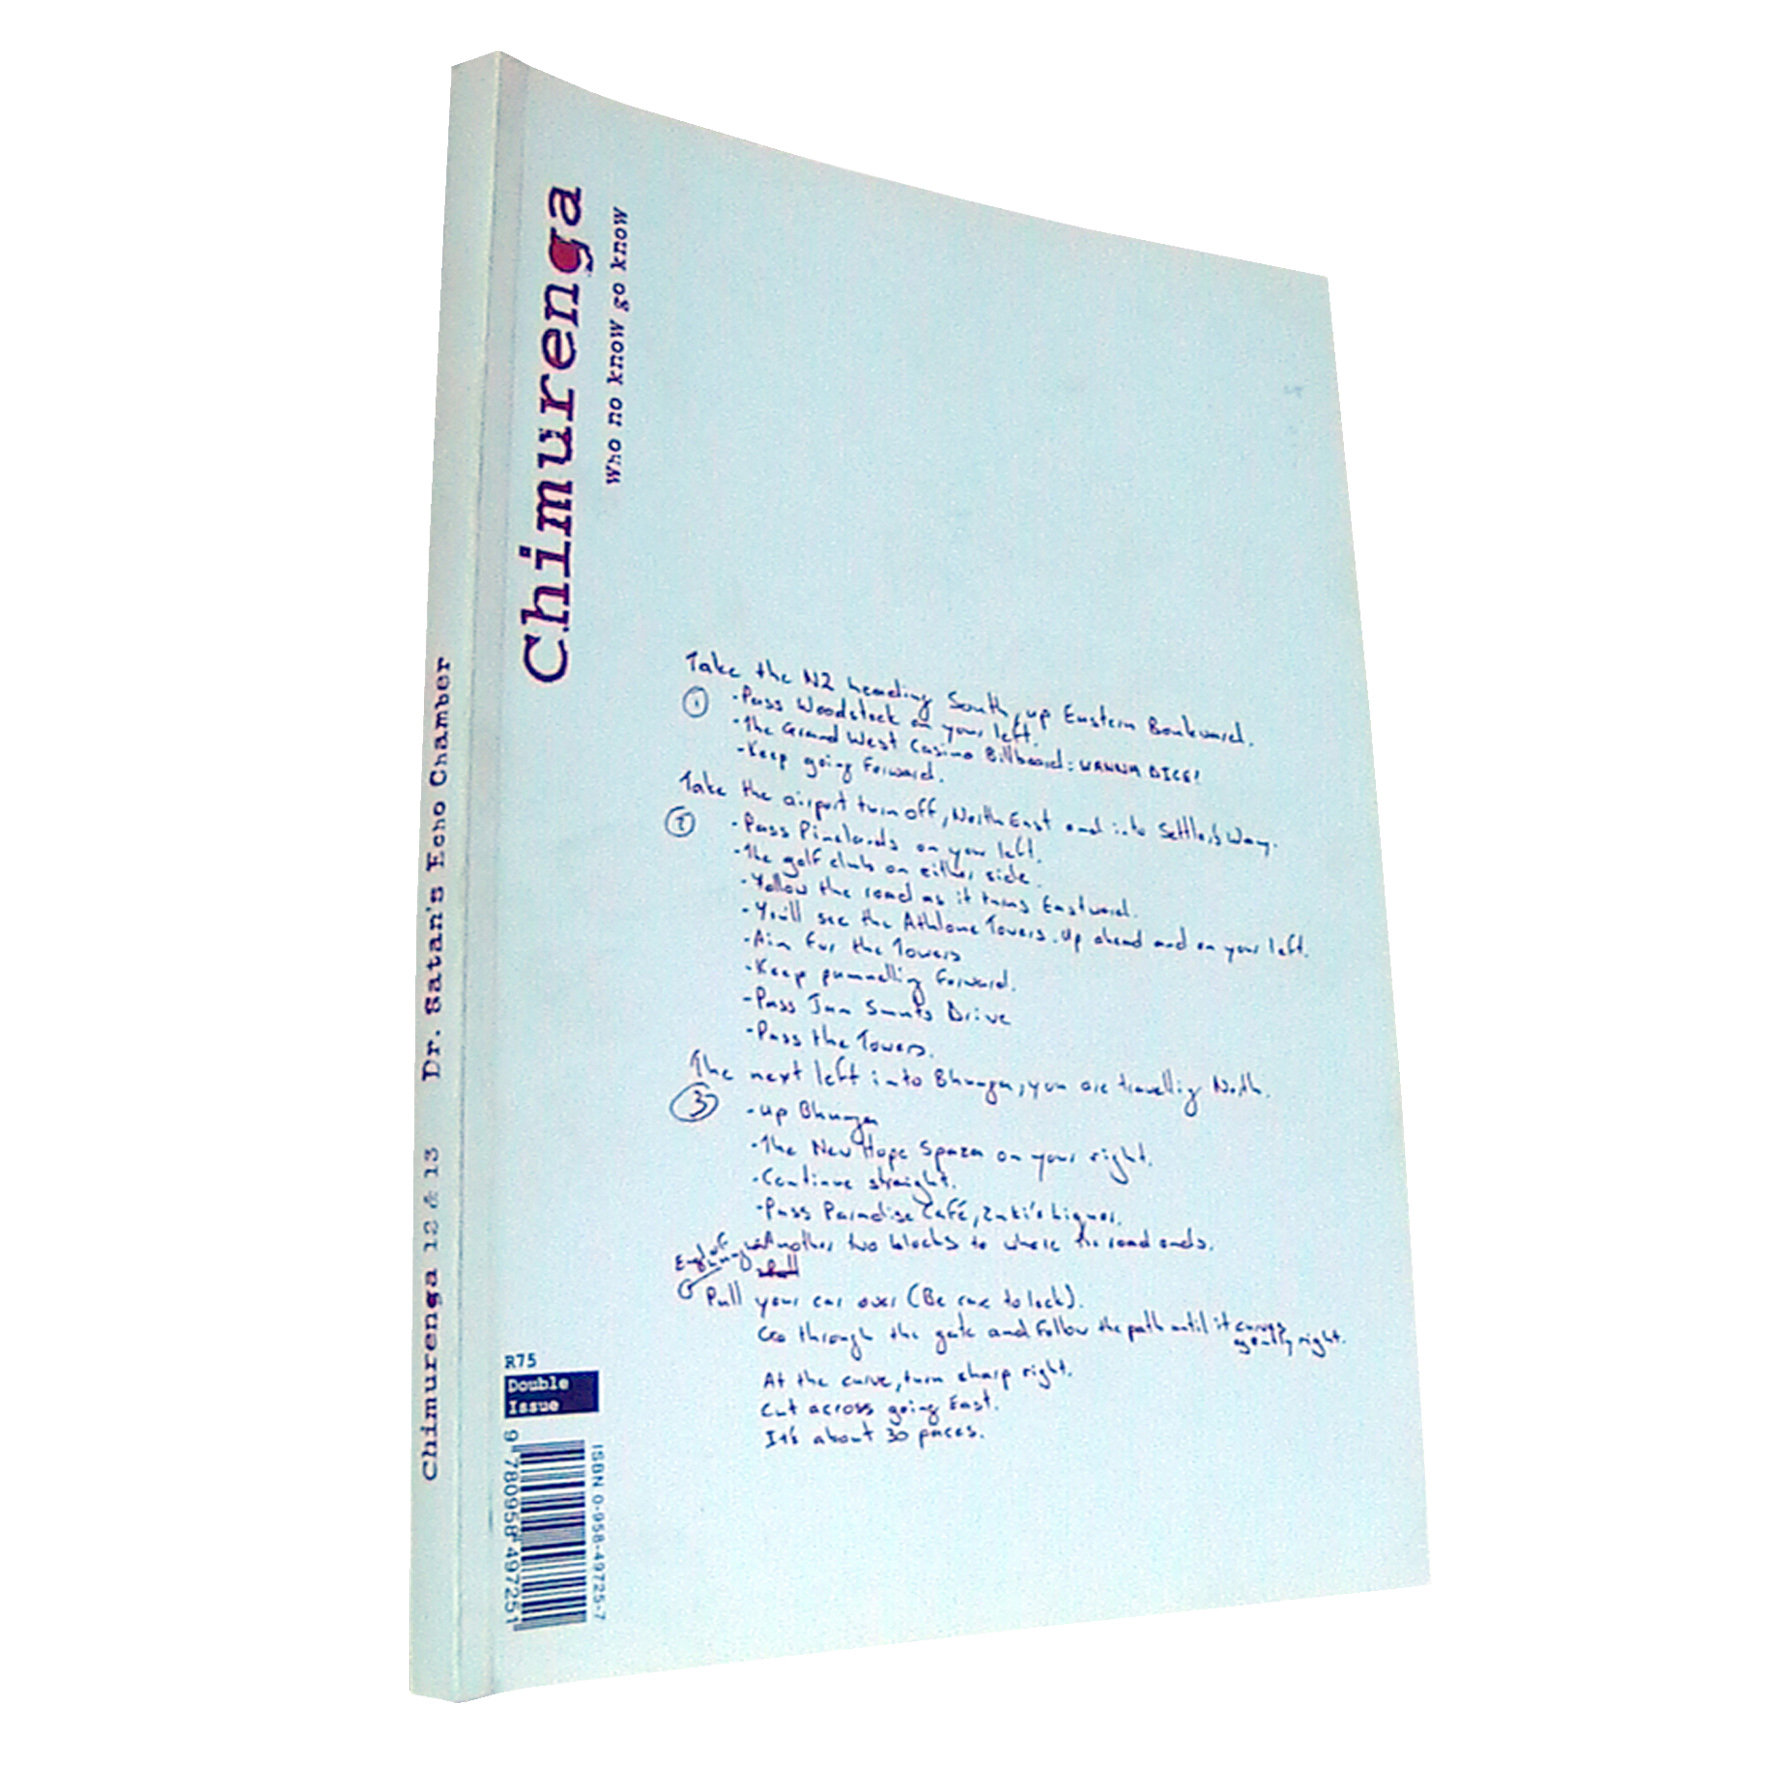 Chimurenga 12/13 - Dr Satan's Echo Chamber (Double-Issue March 2008) Print CJ1213